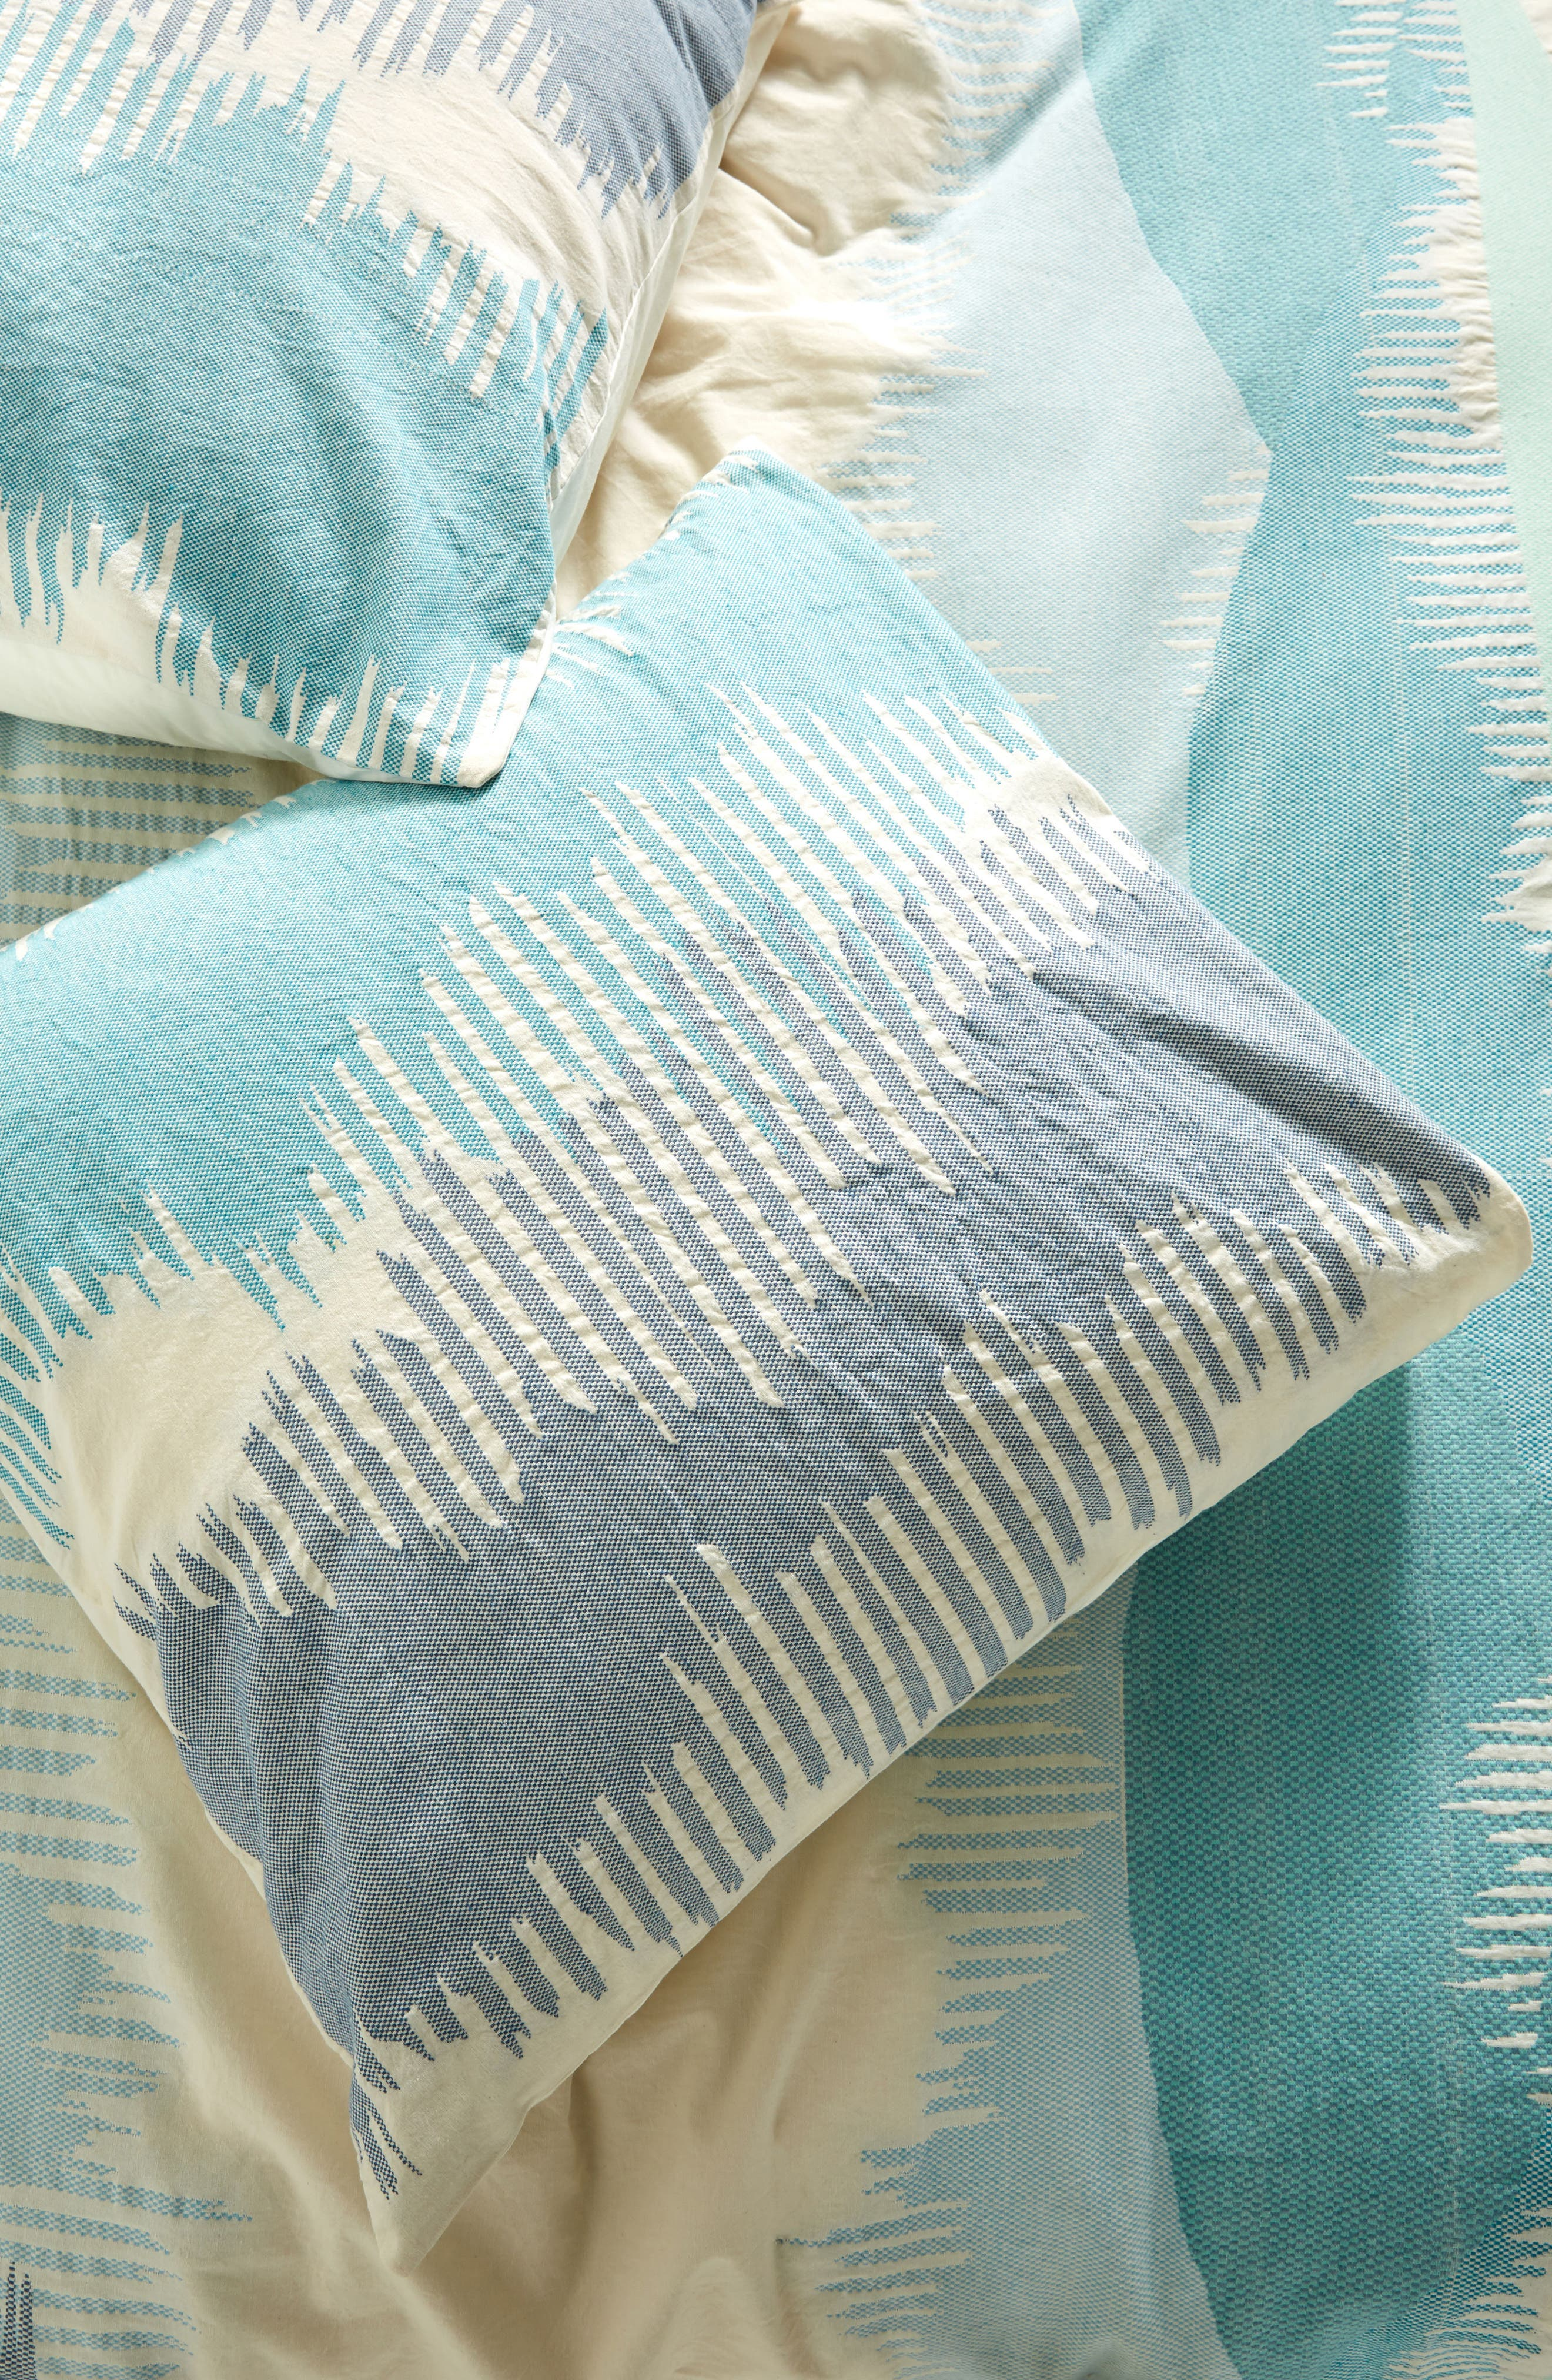 Woven Calera Euro Sham,                         Main,                         color, Blue